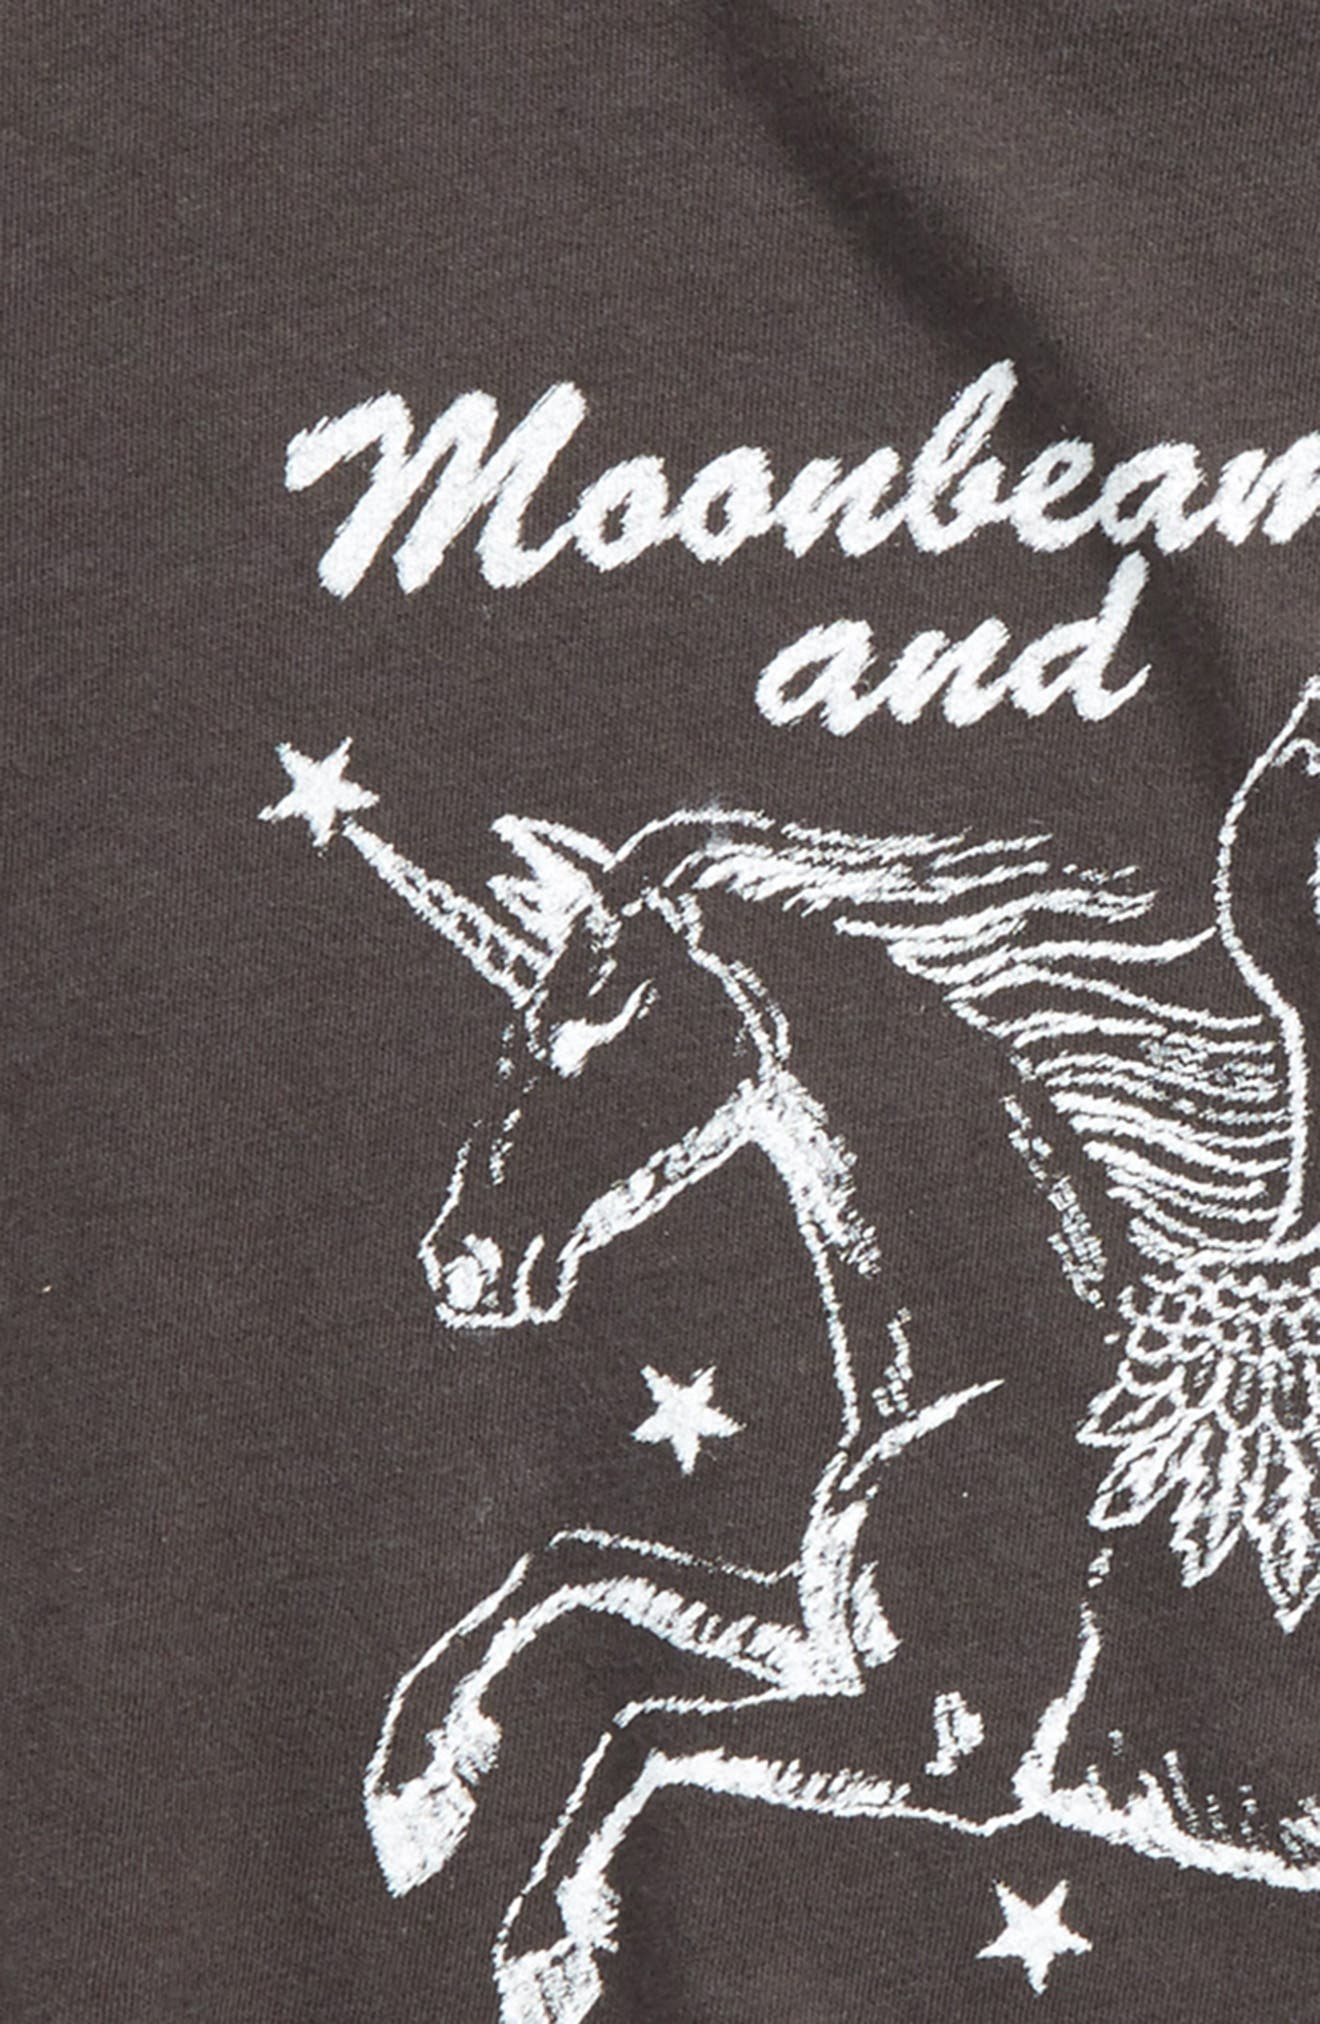 Alternate Image 2  - O'Neill Moonbeams and Daydreams Graphic Tee (Toddler Girls & Little Girls)